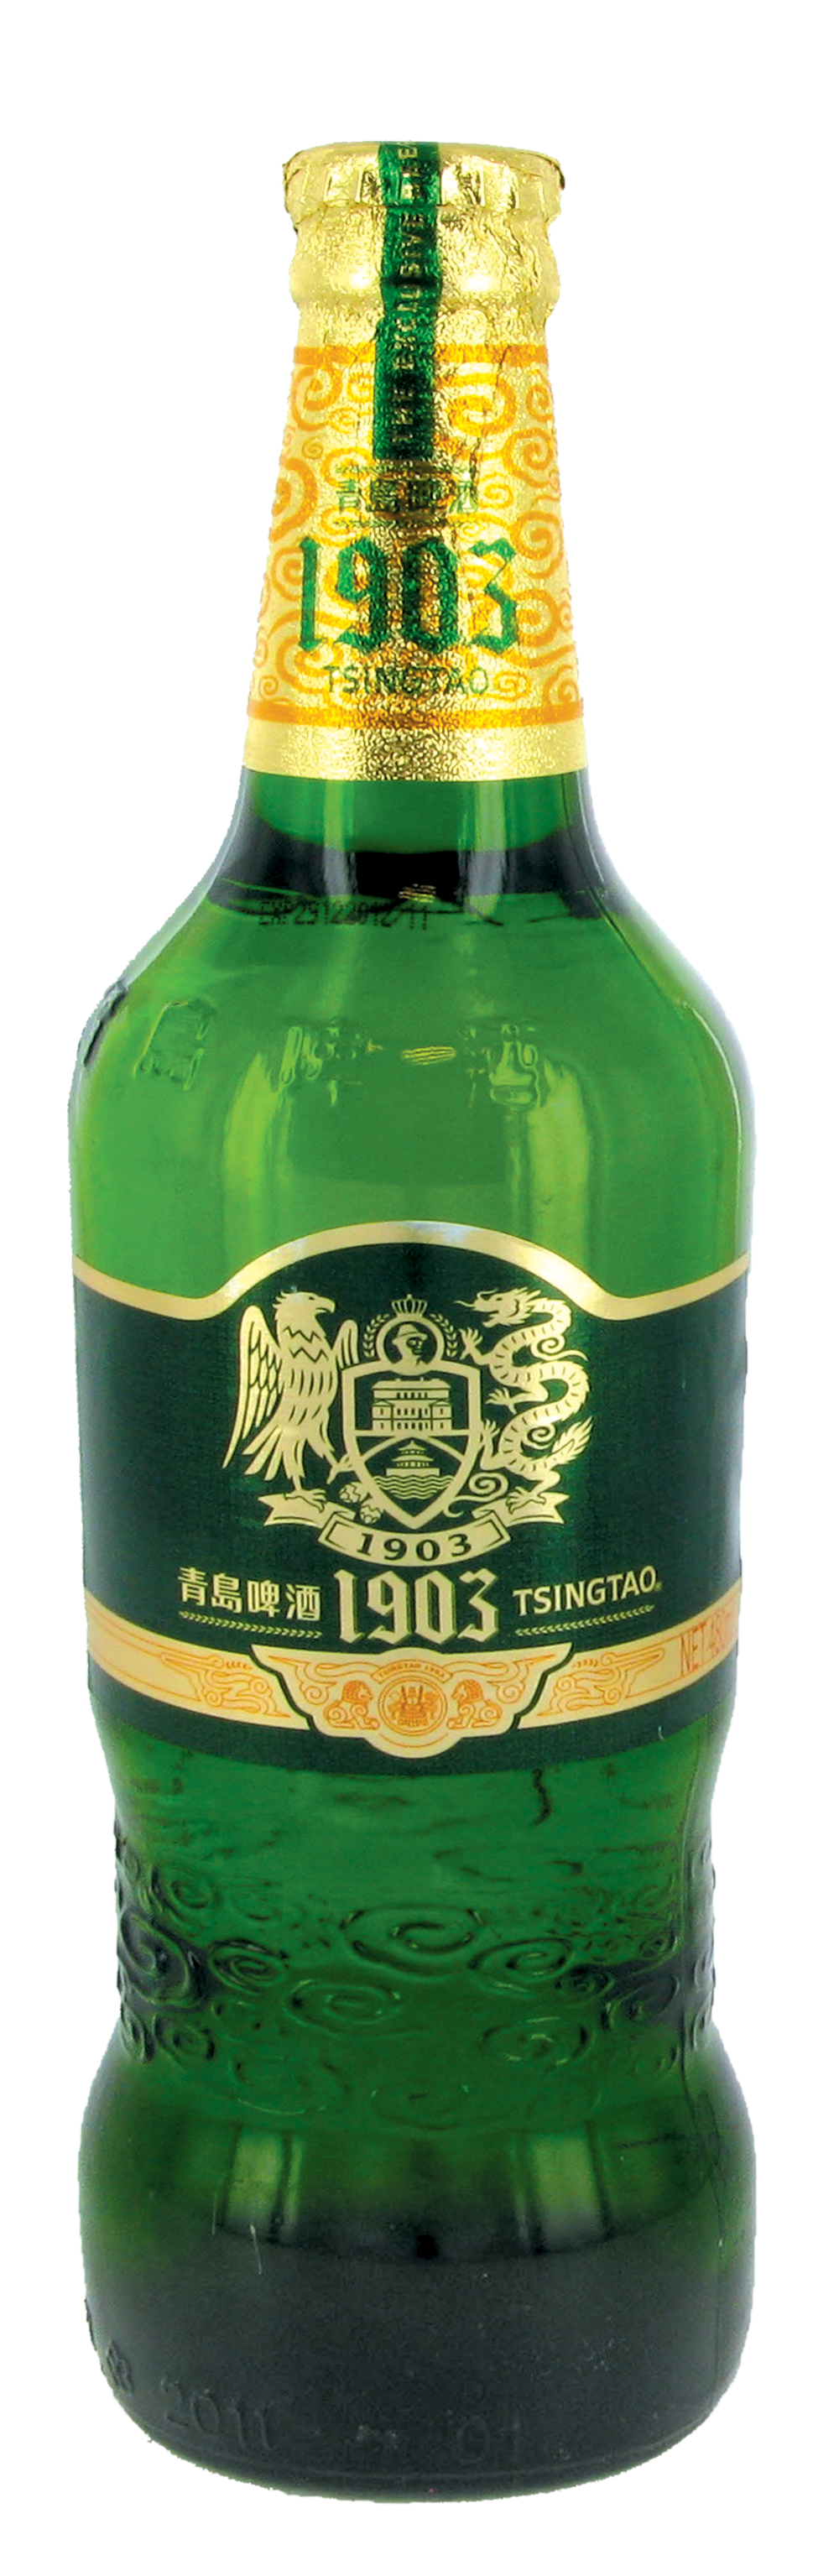 Tsingtao 1903 (480 ml)